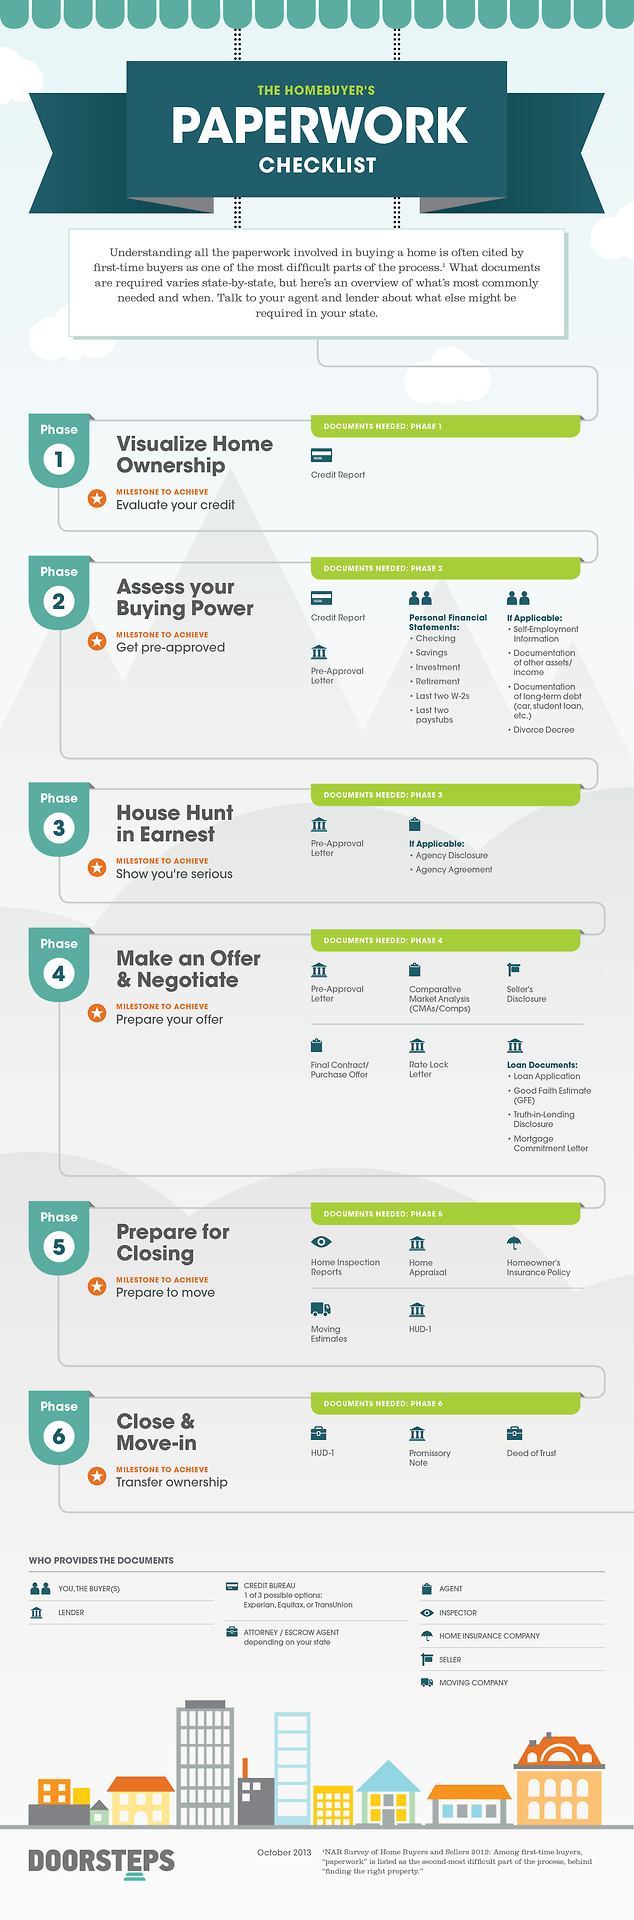 Doorsteps Blog: Overview of the basic paperwork required to buy a house. This varies from state to state, but it's a good overview.